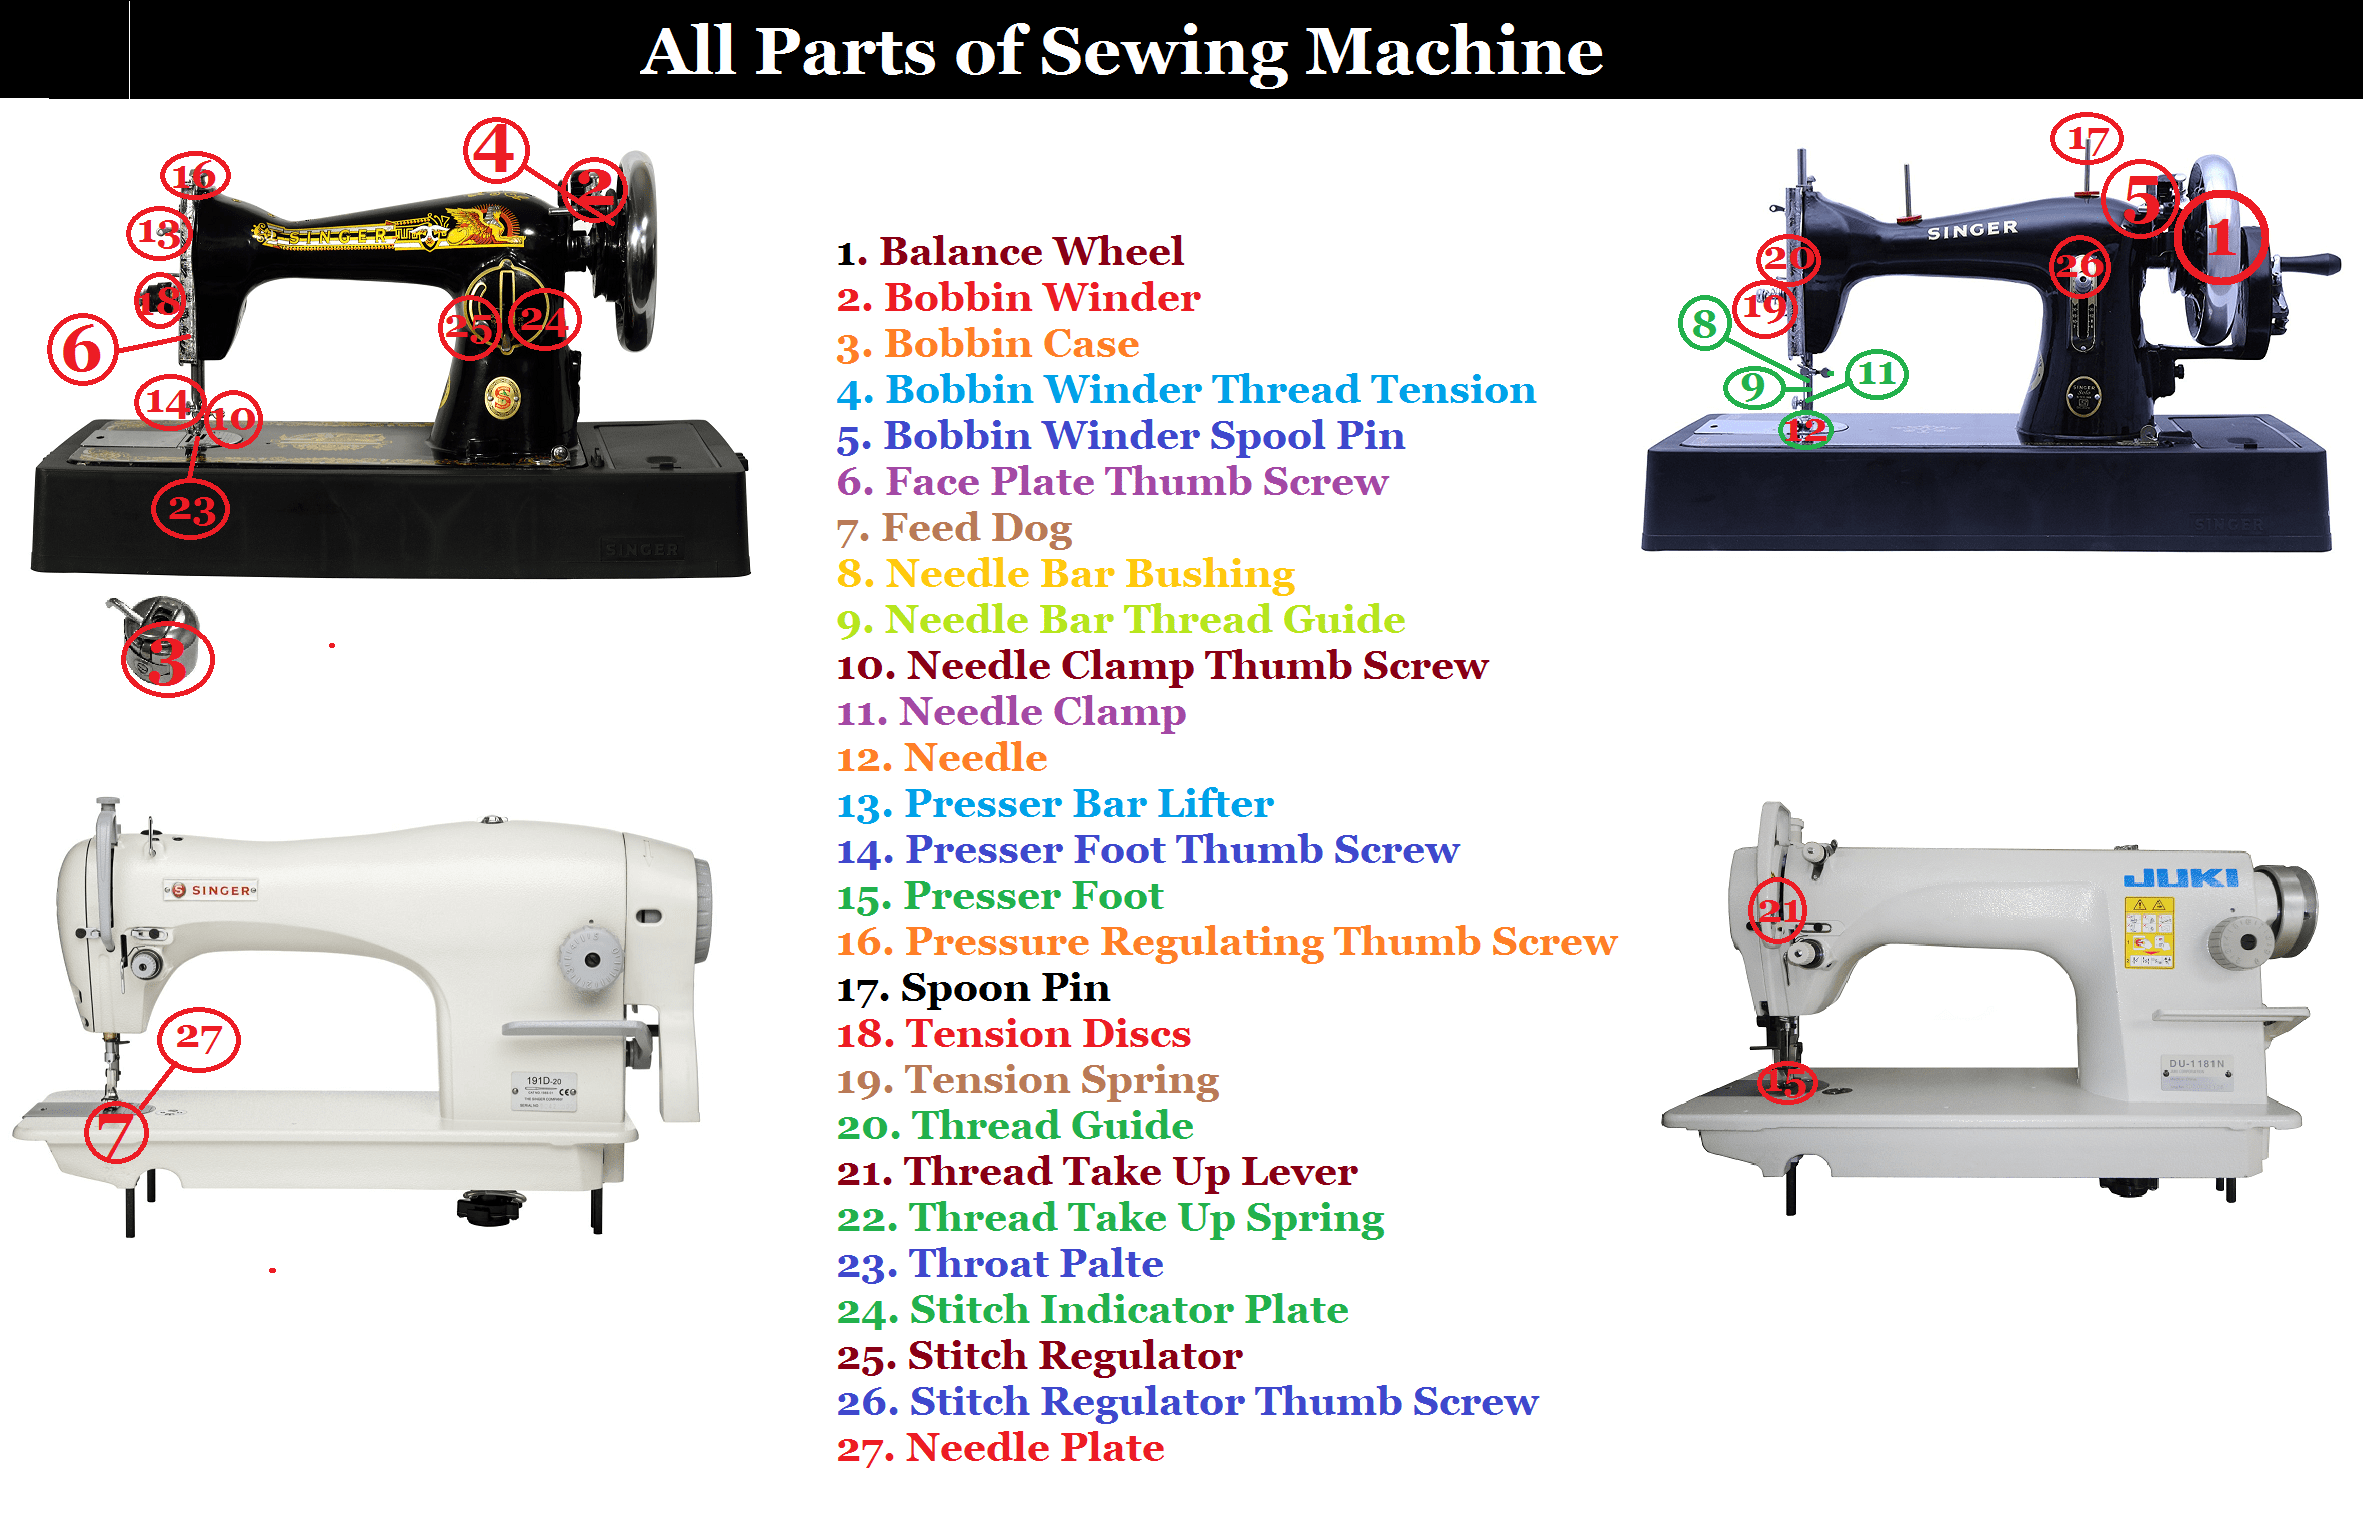 Sewing Machine Parts: Name, Functions, Sourcing, and ...